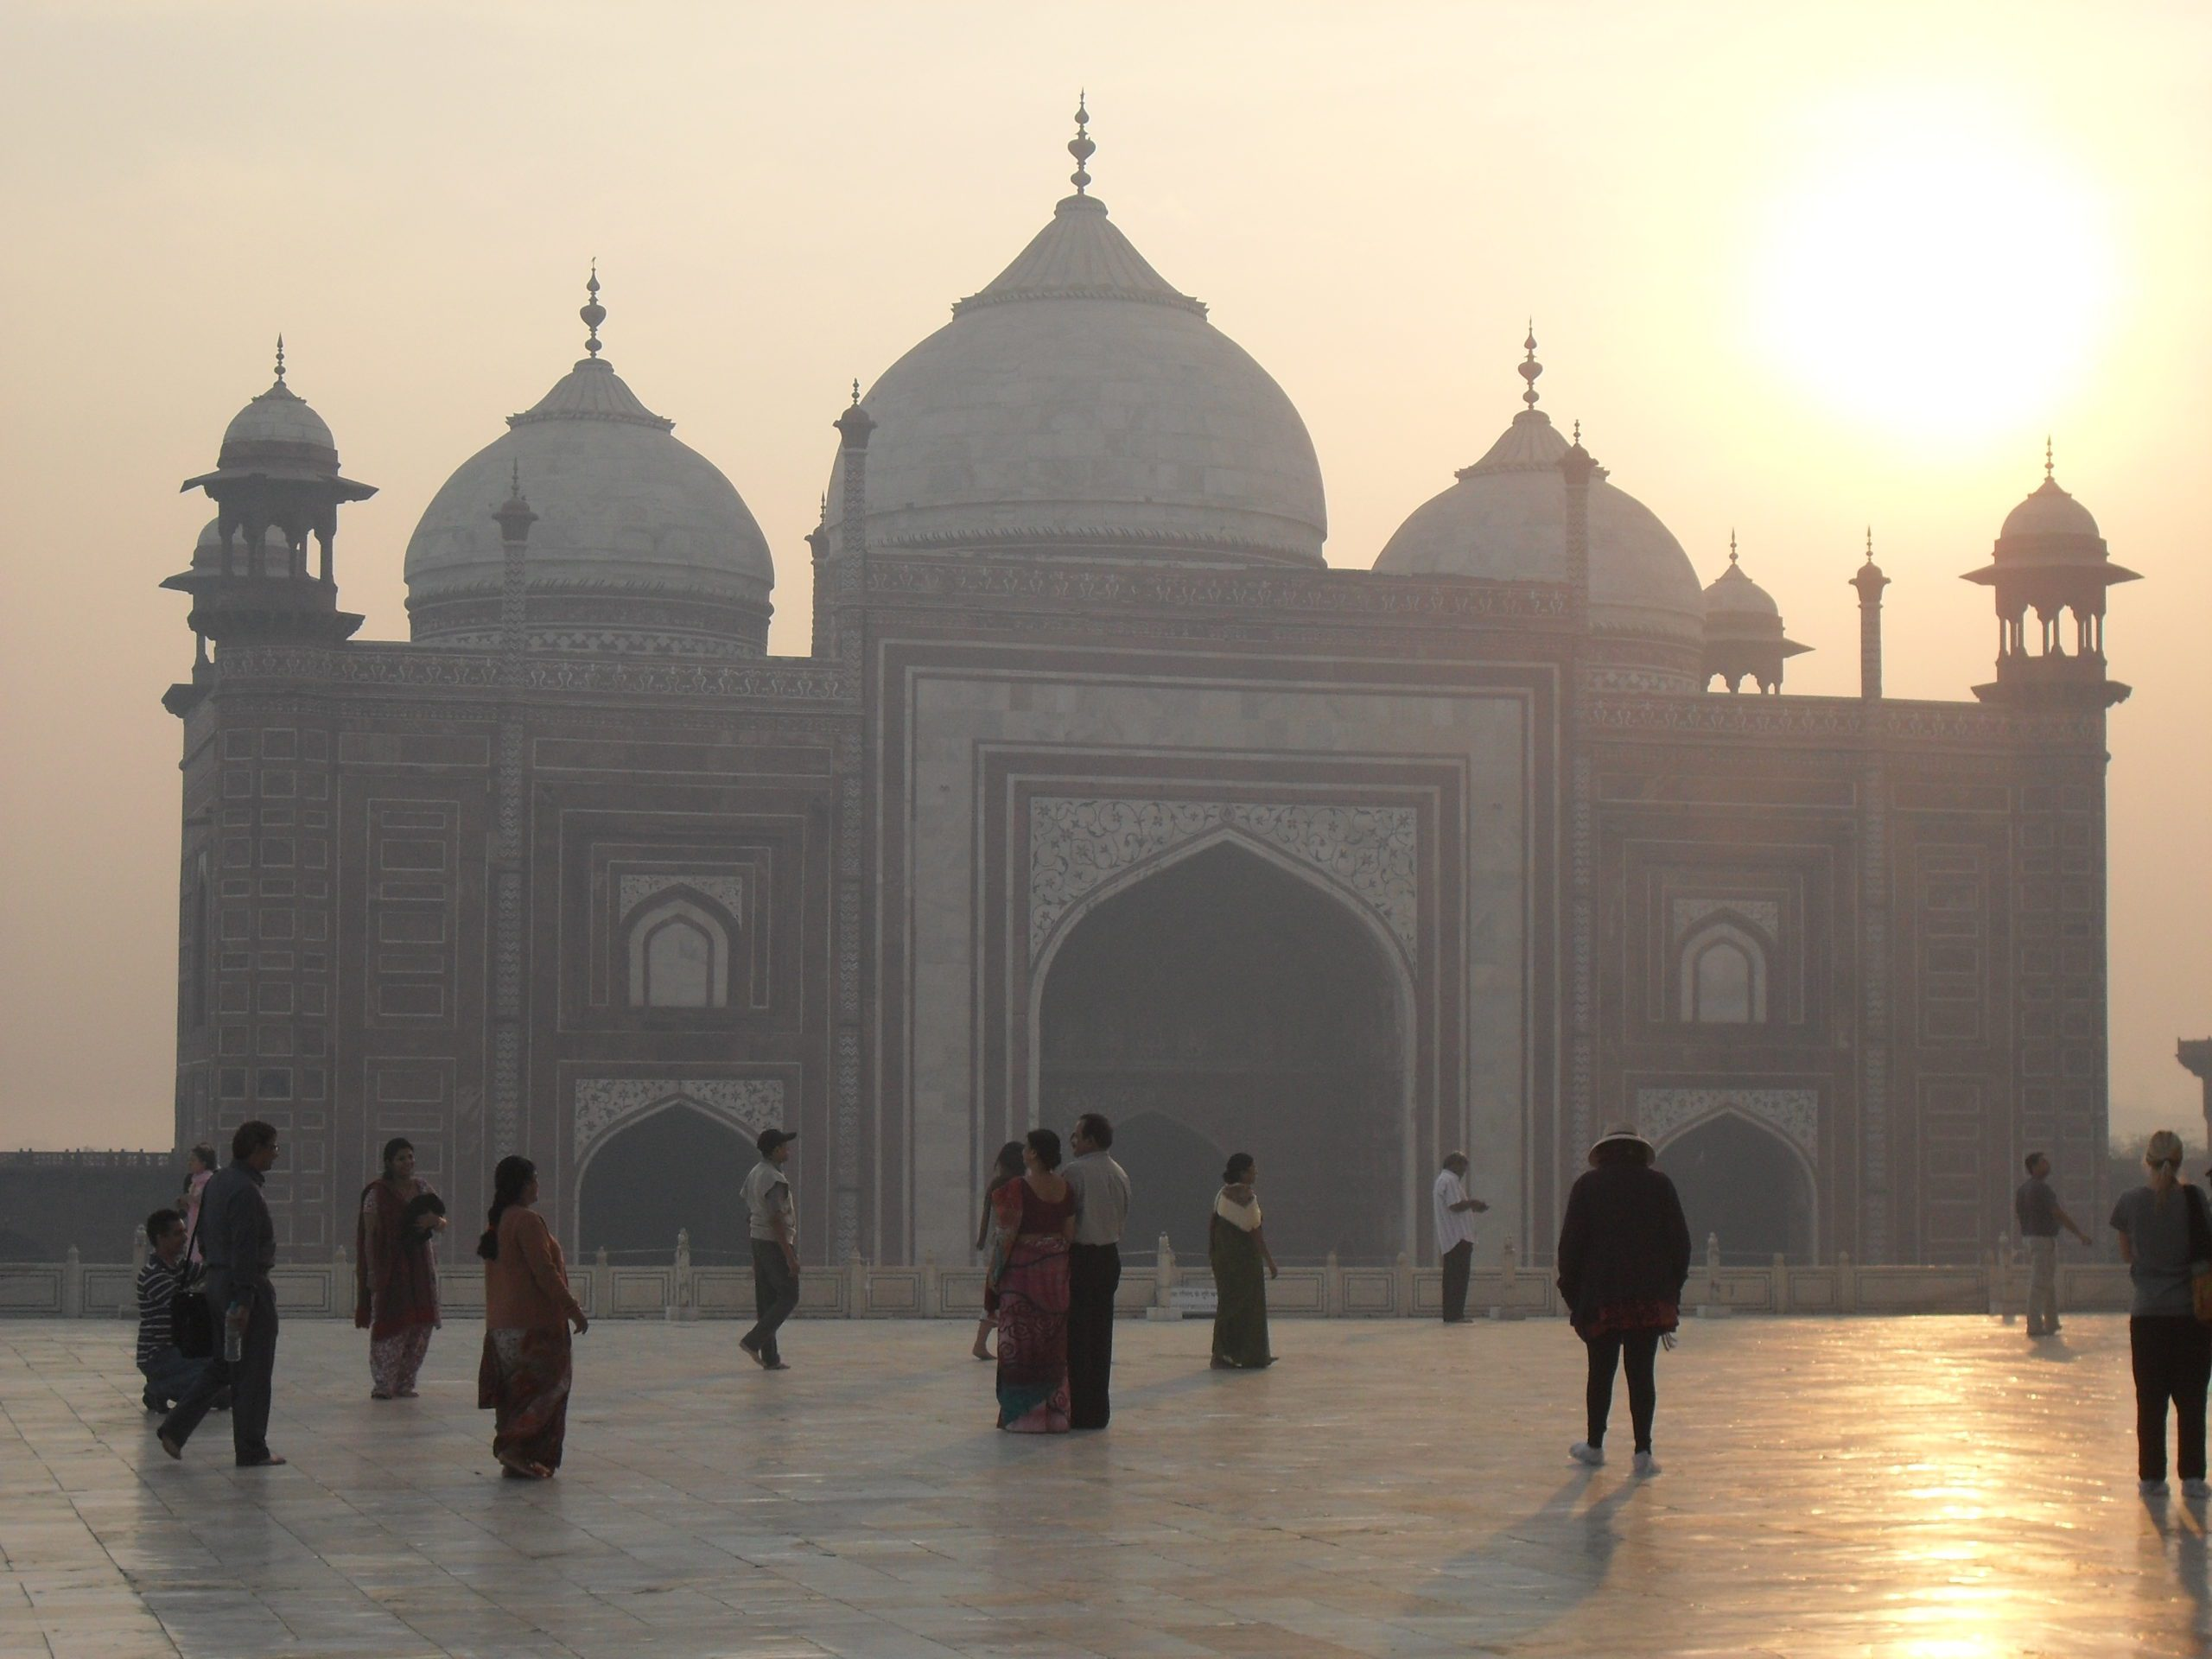 entry to the Taj Mahal as dawn breaks